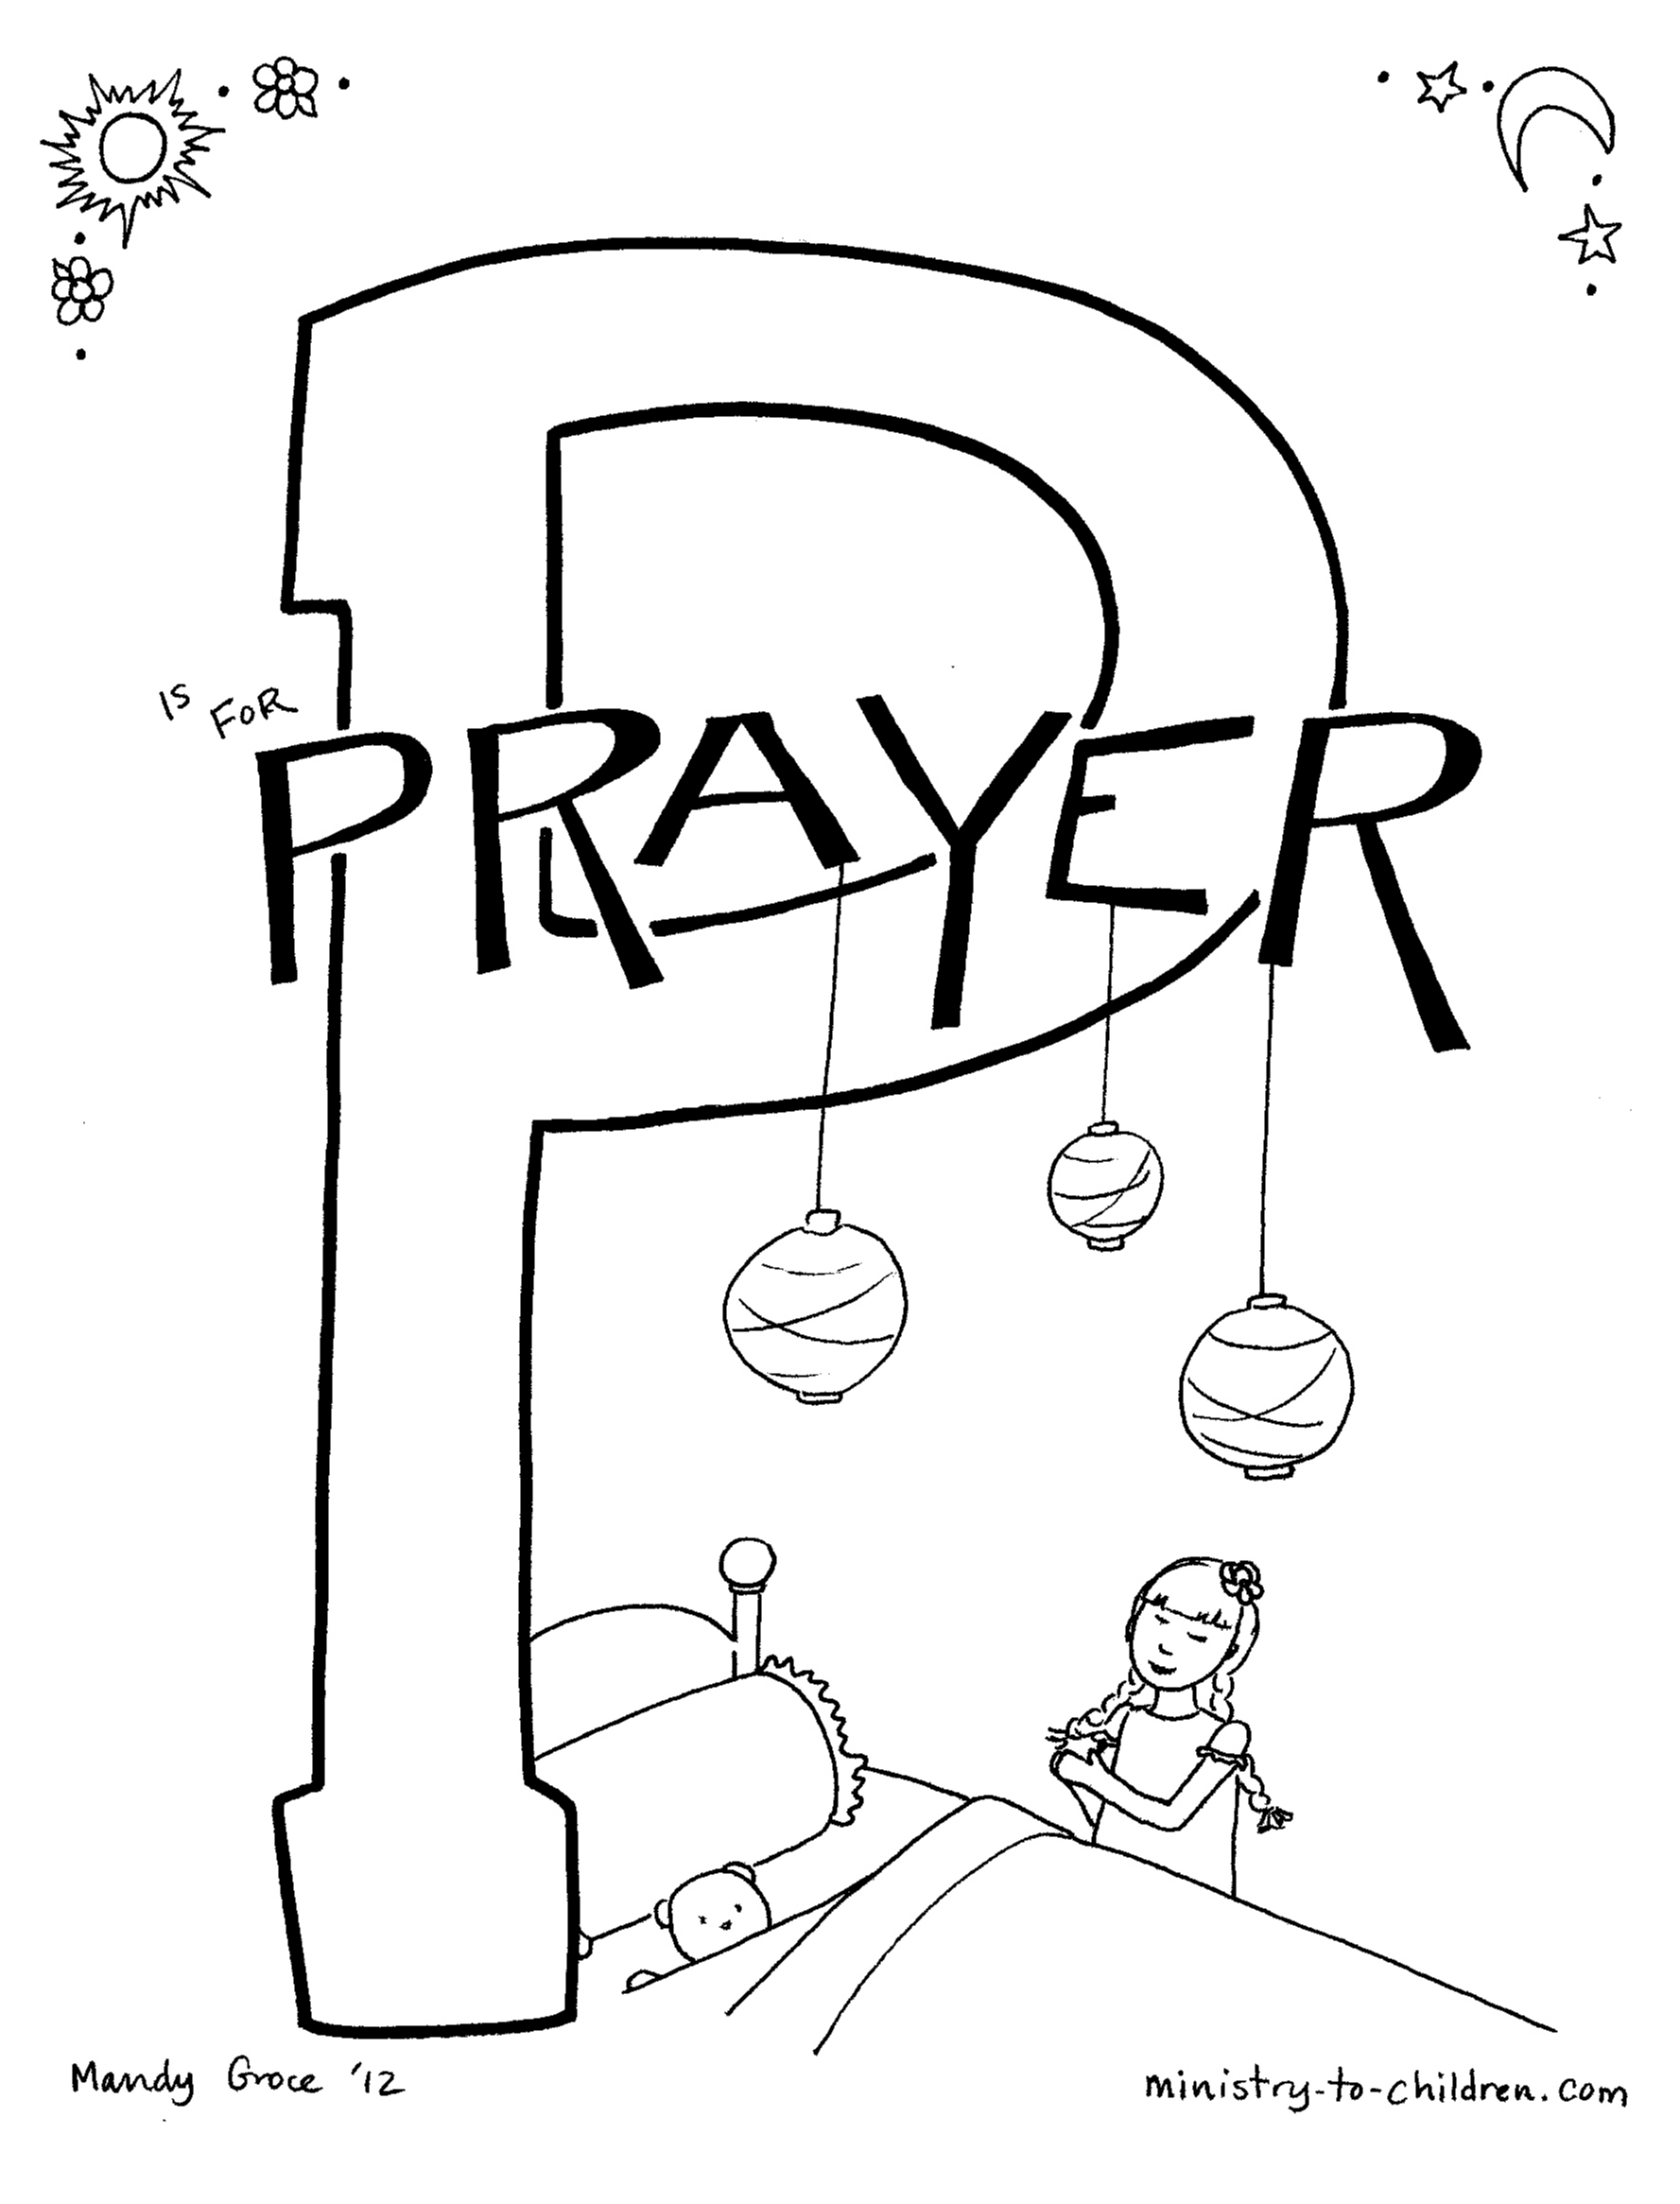 alphabet bible coloring pages  Bible Coloring Pages  Bible